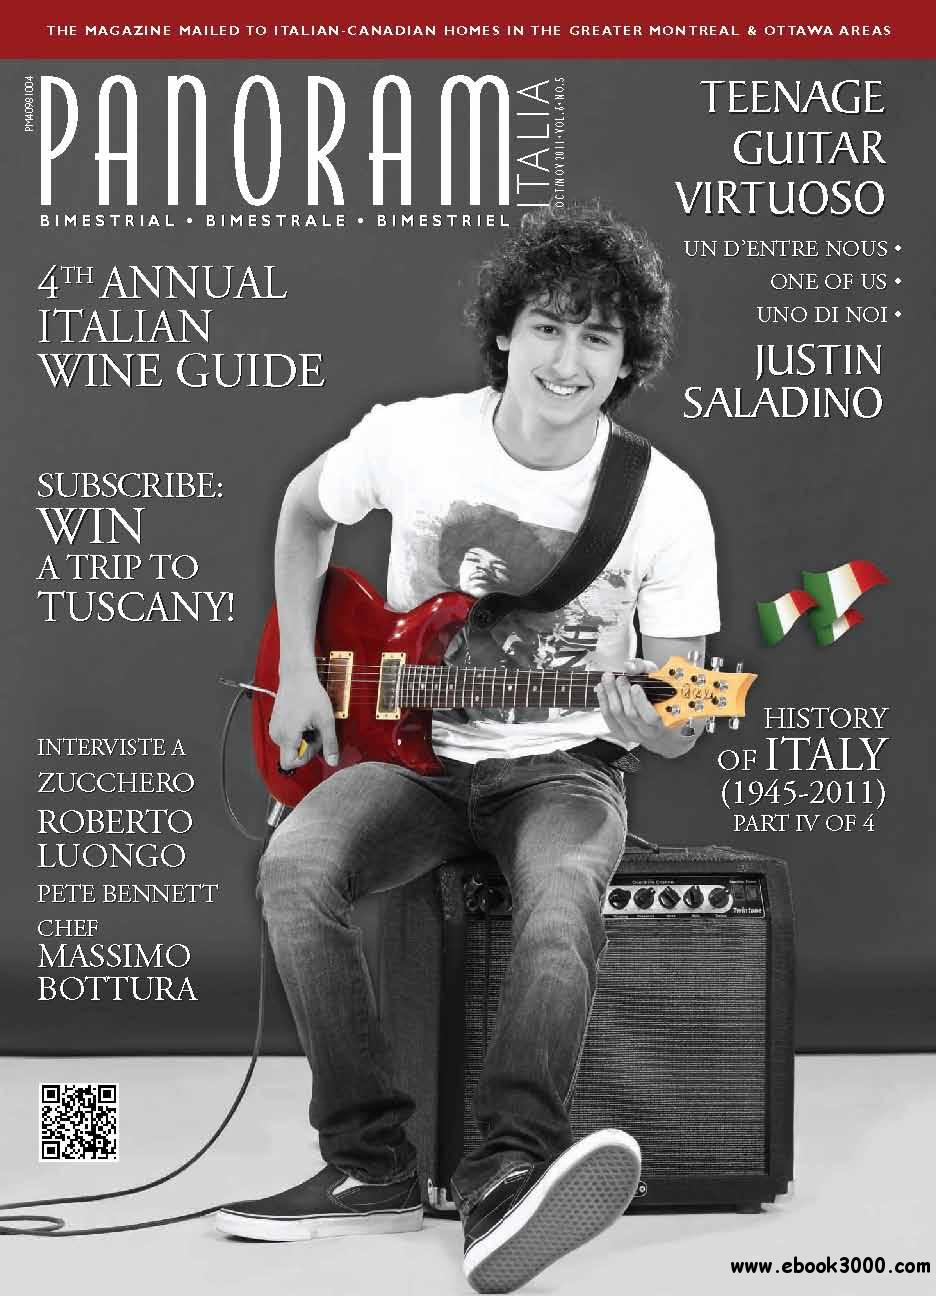 Panoram Italia No.5 October/November 2011 free download